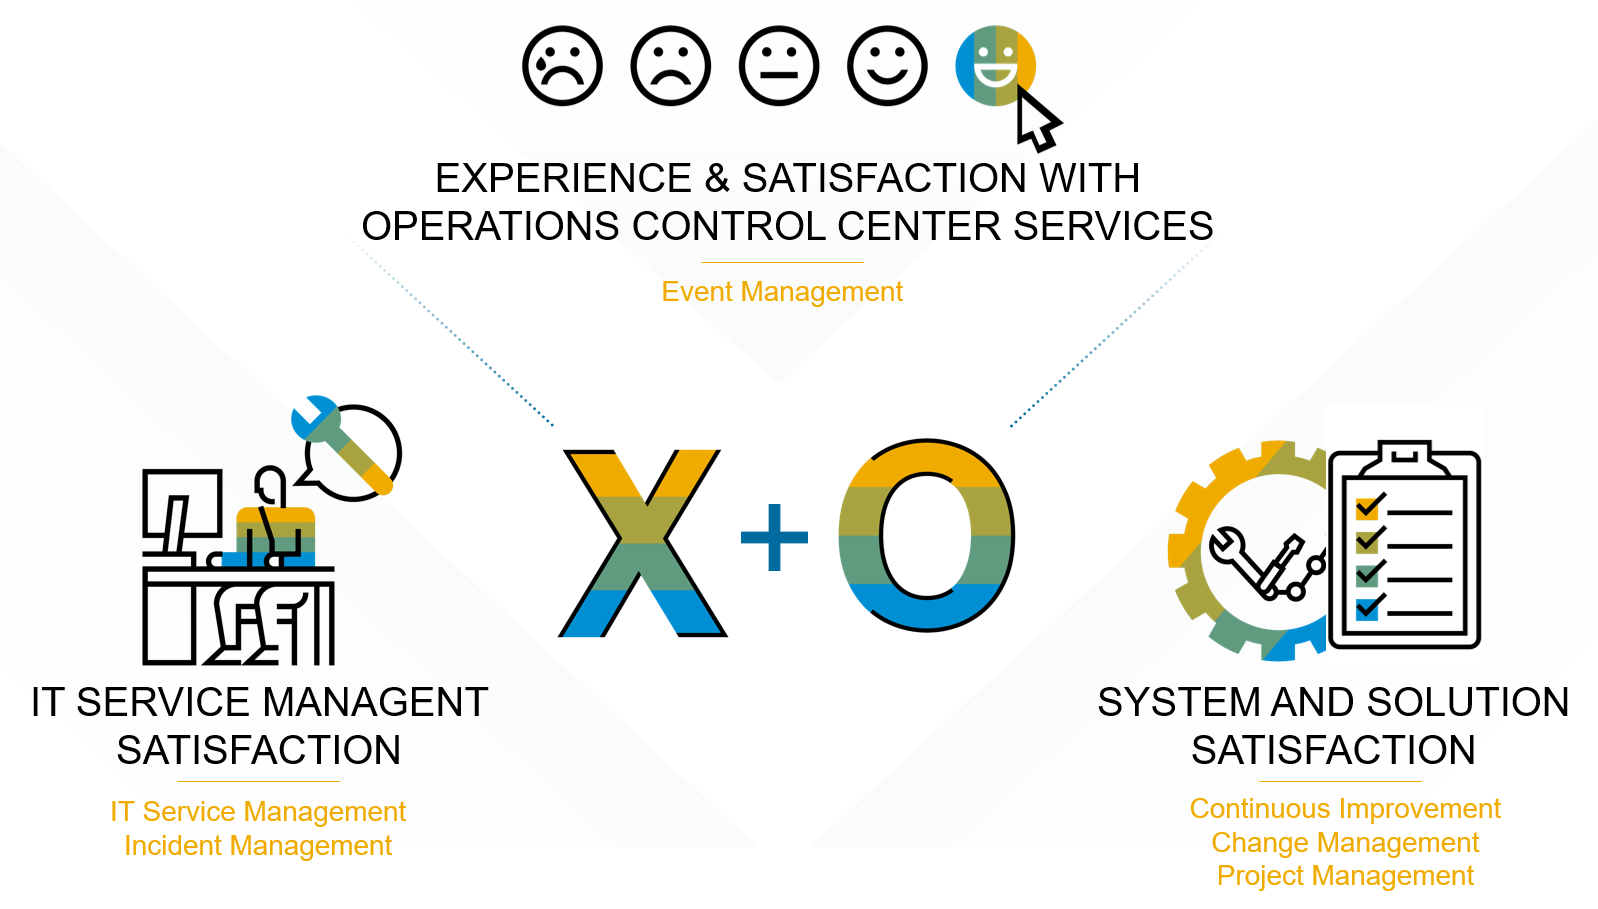 Experience%20Management%20for%20Run%20Operations%20-%20Concept